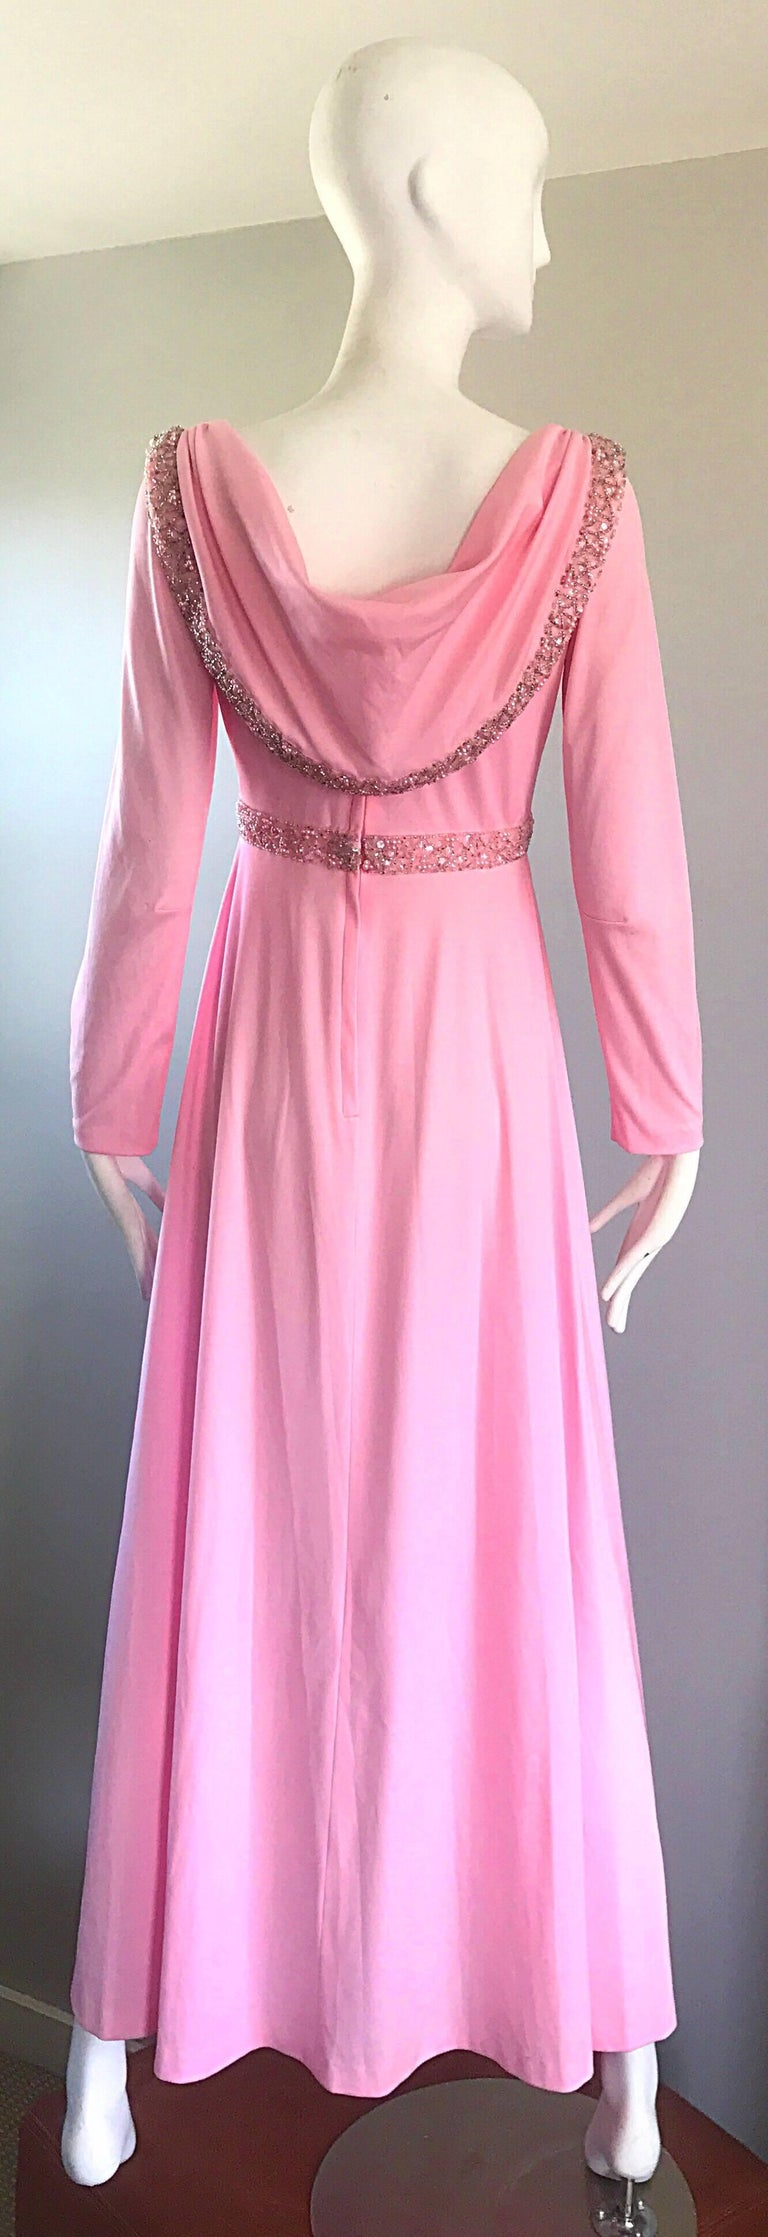 Amazing 1970s Light Pink Grecian Sequined and Beaded Long Sleeve Maxi Dress Gown For Sale 6